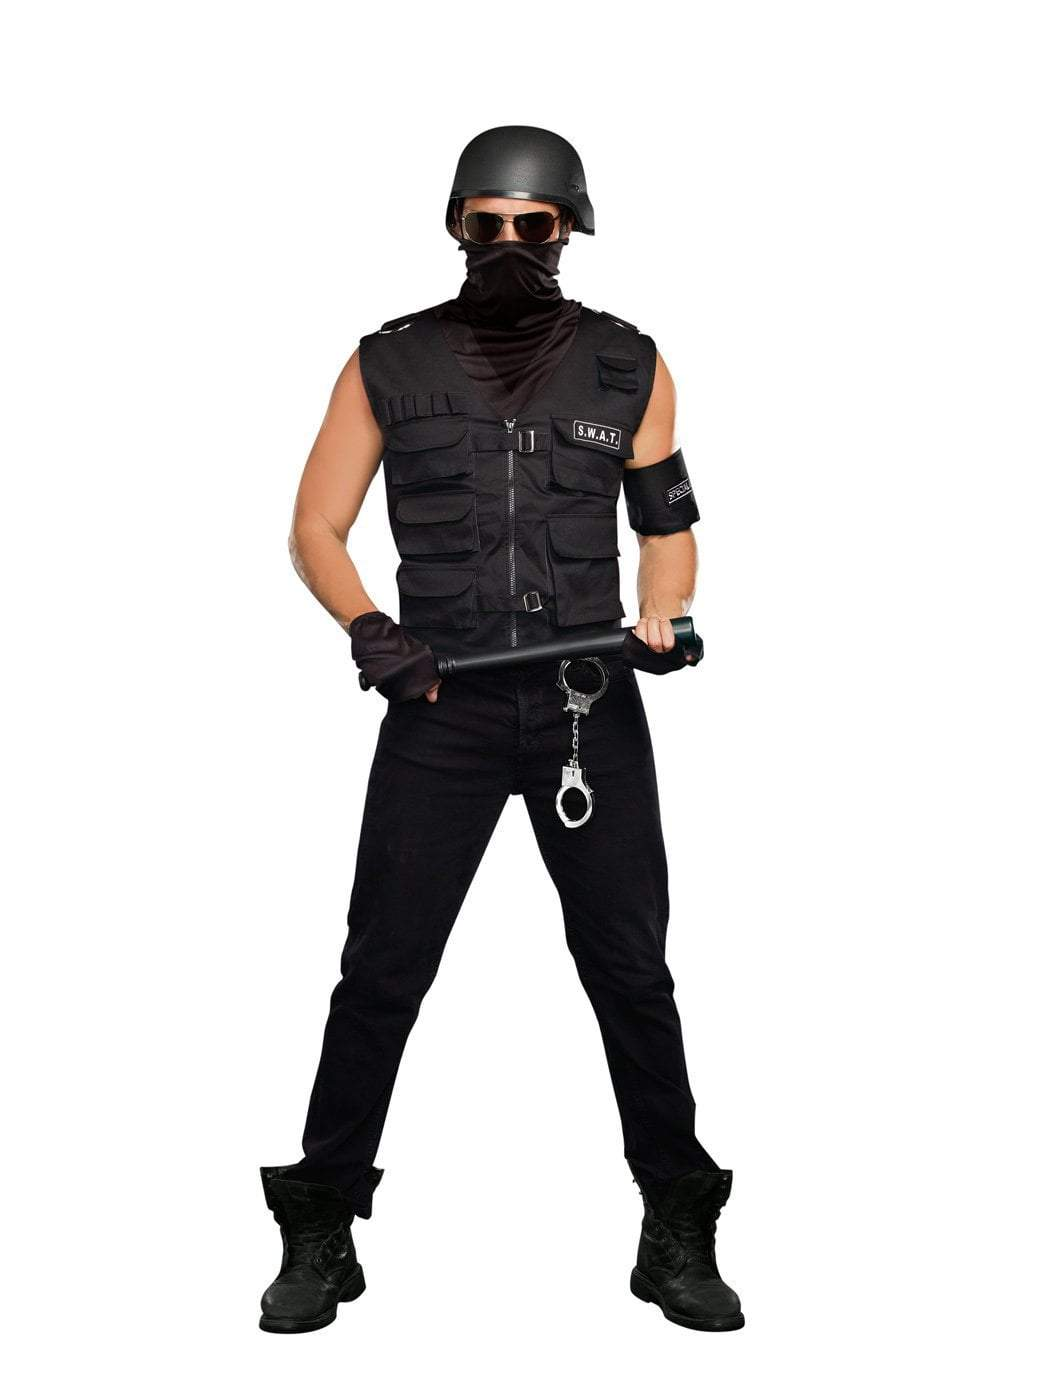 Dreamgirl Costumes LARGE Men's Special Ops Police Costume